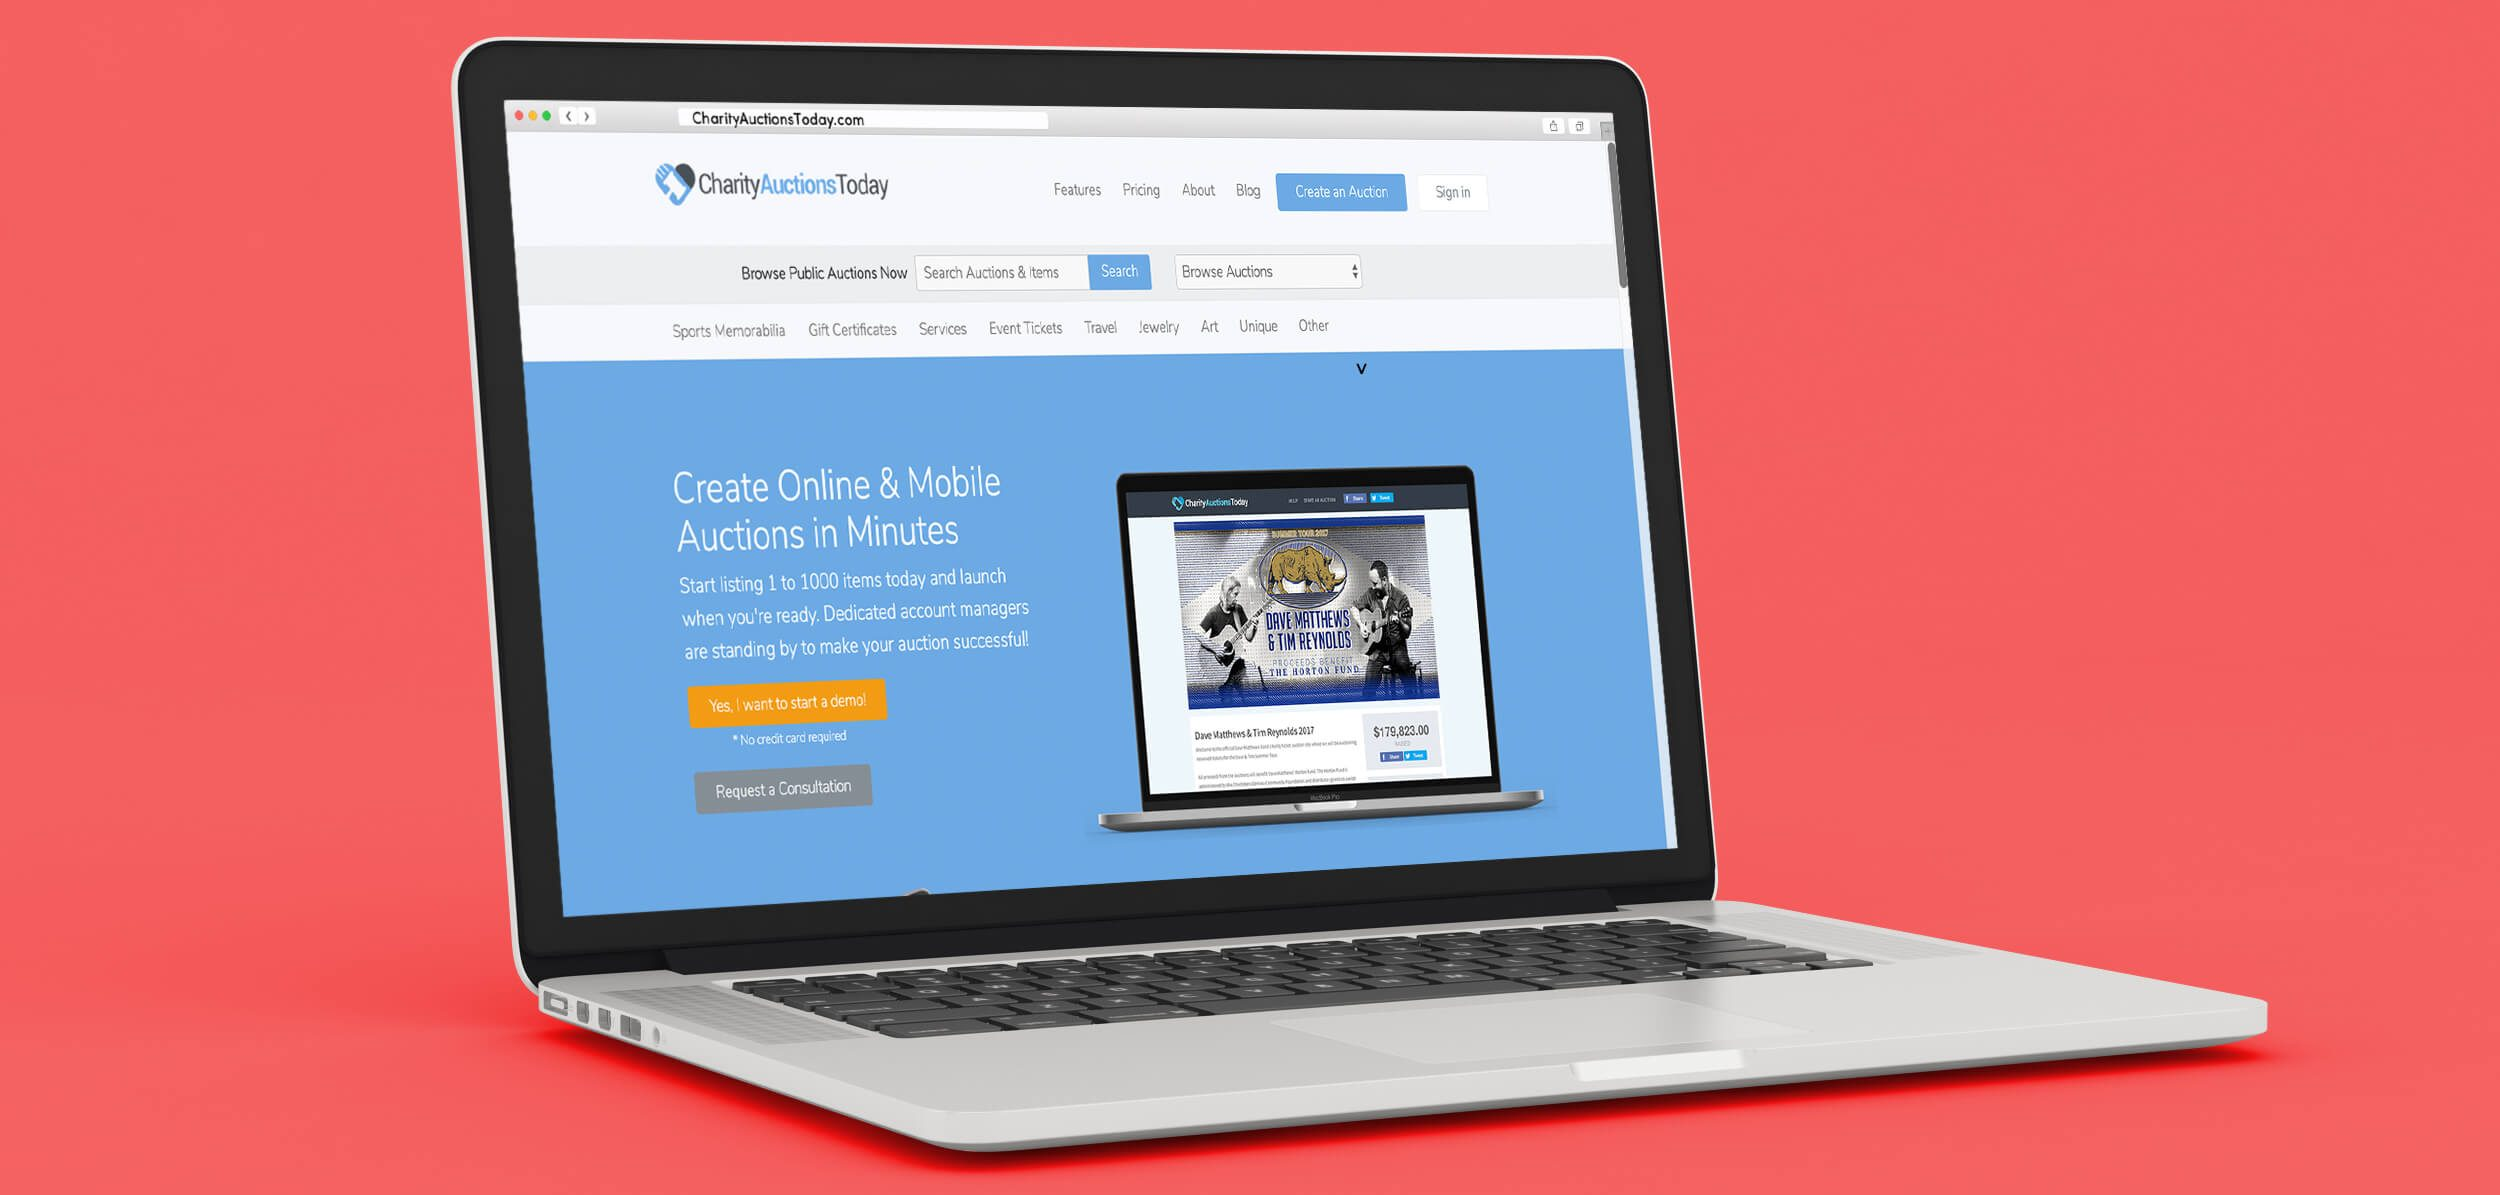 CharityAuctionsToday is one of the many software options available to nonprofits for creating an online auction.